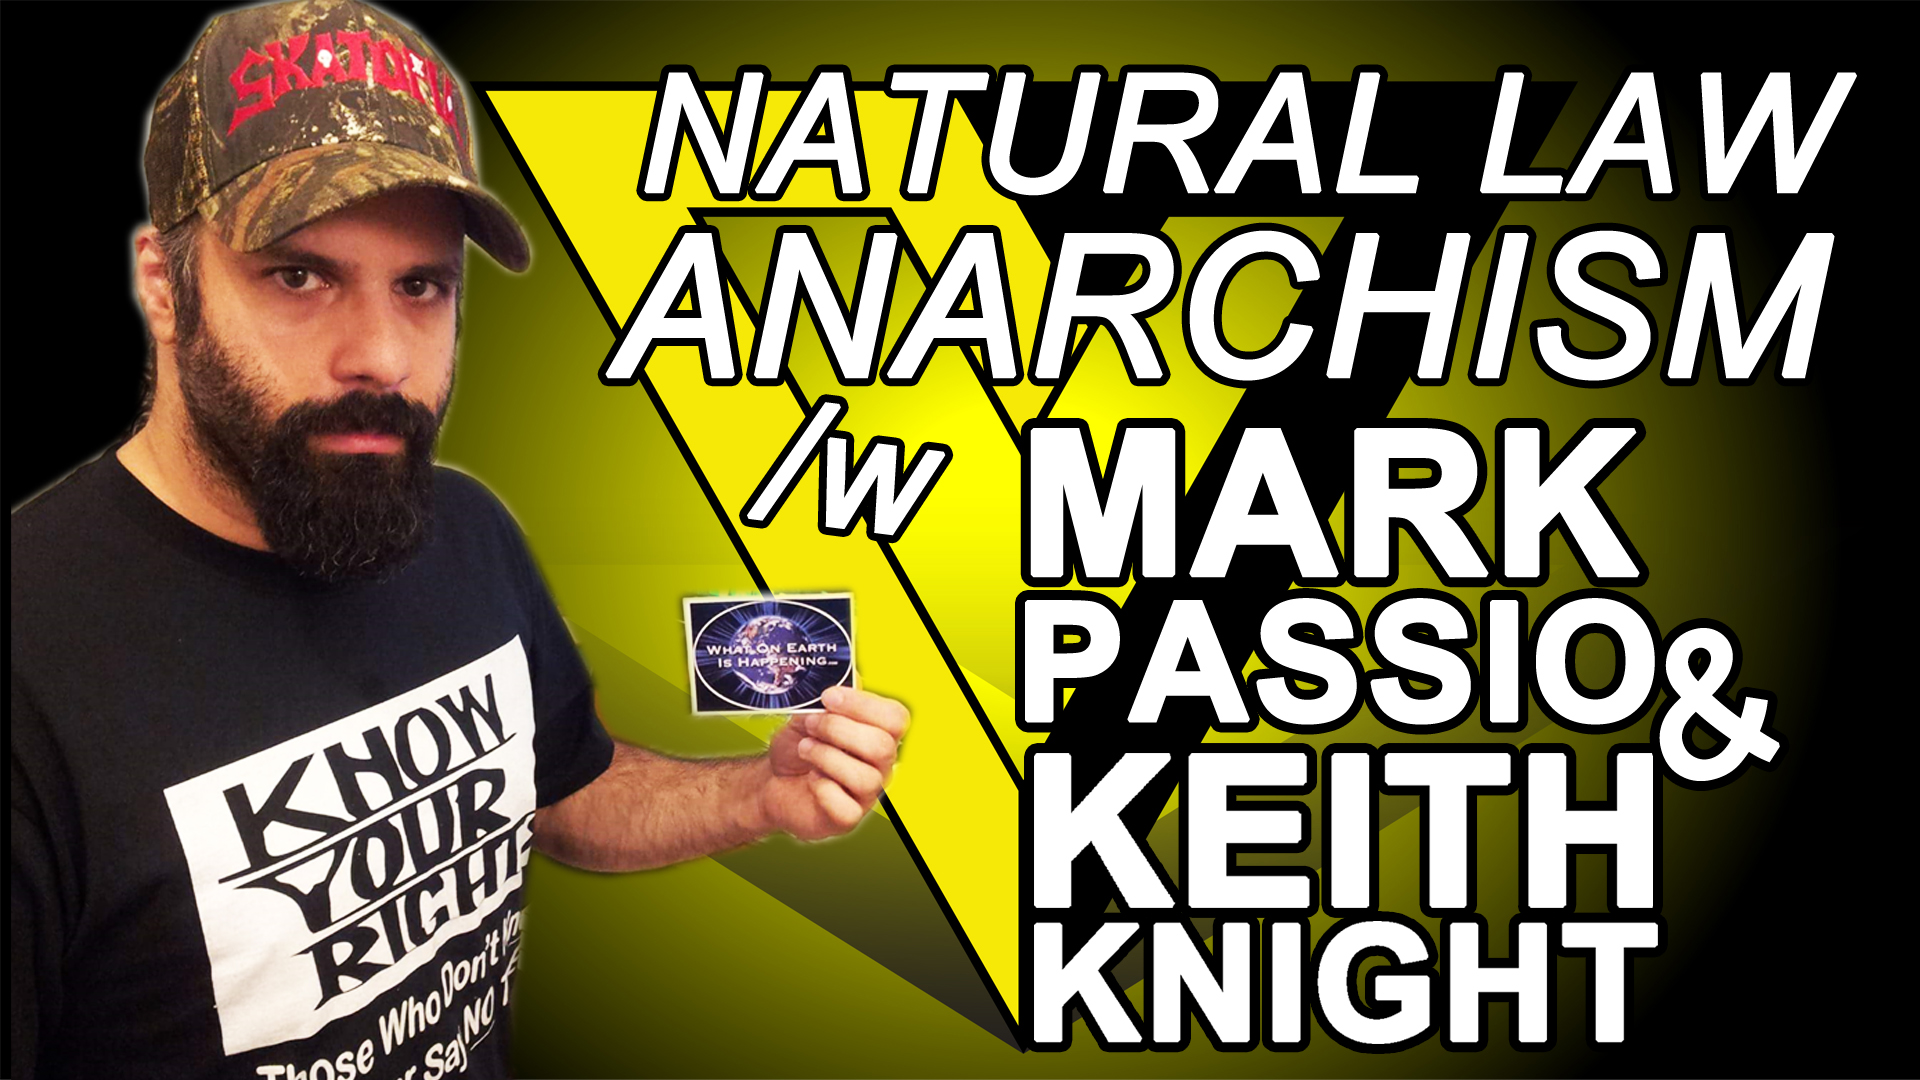 Natural Law Anarchism Mark Passio